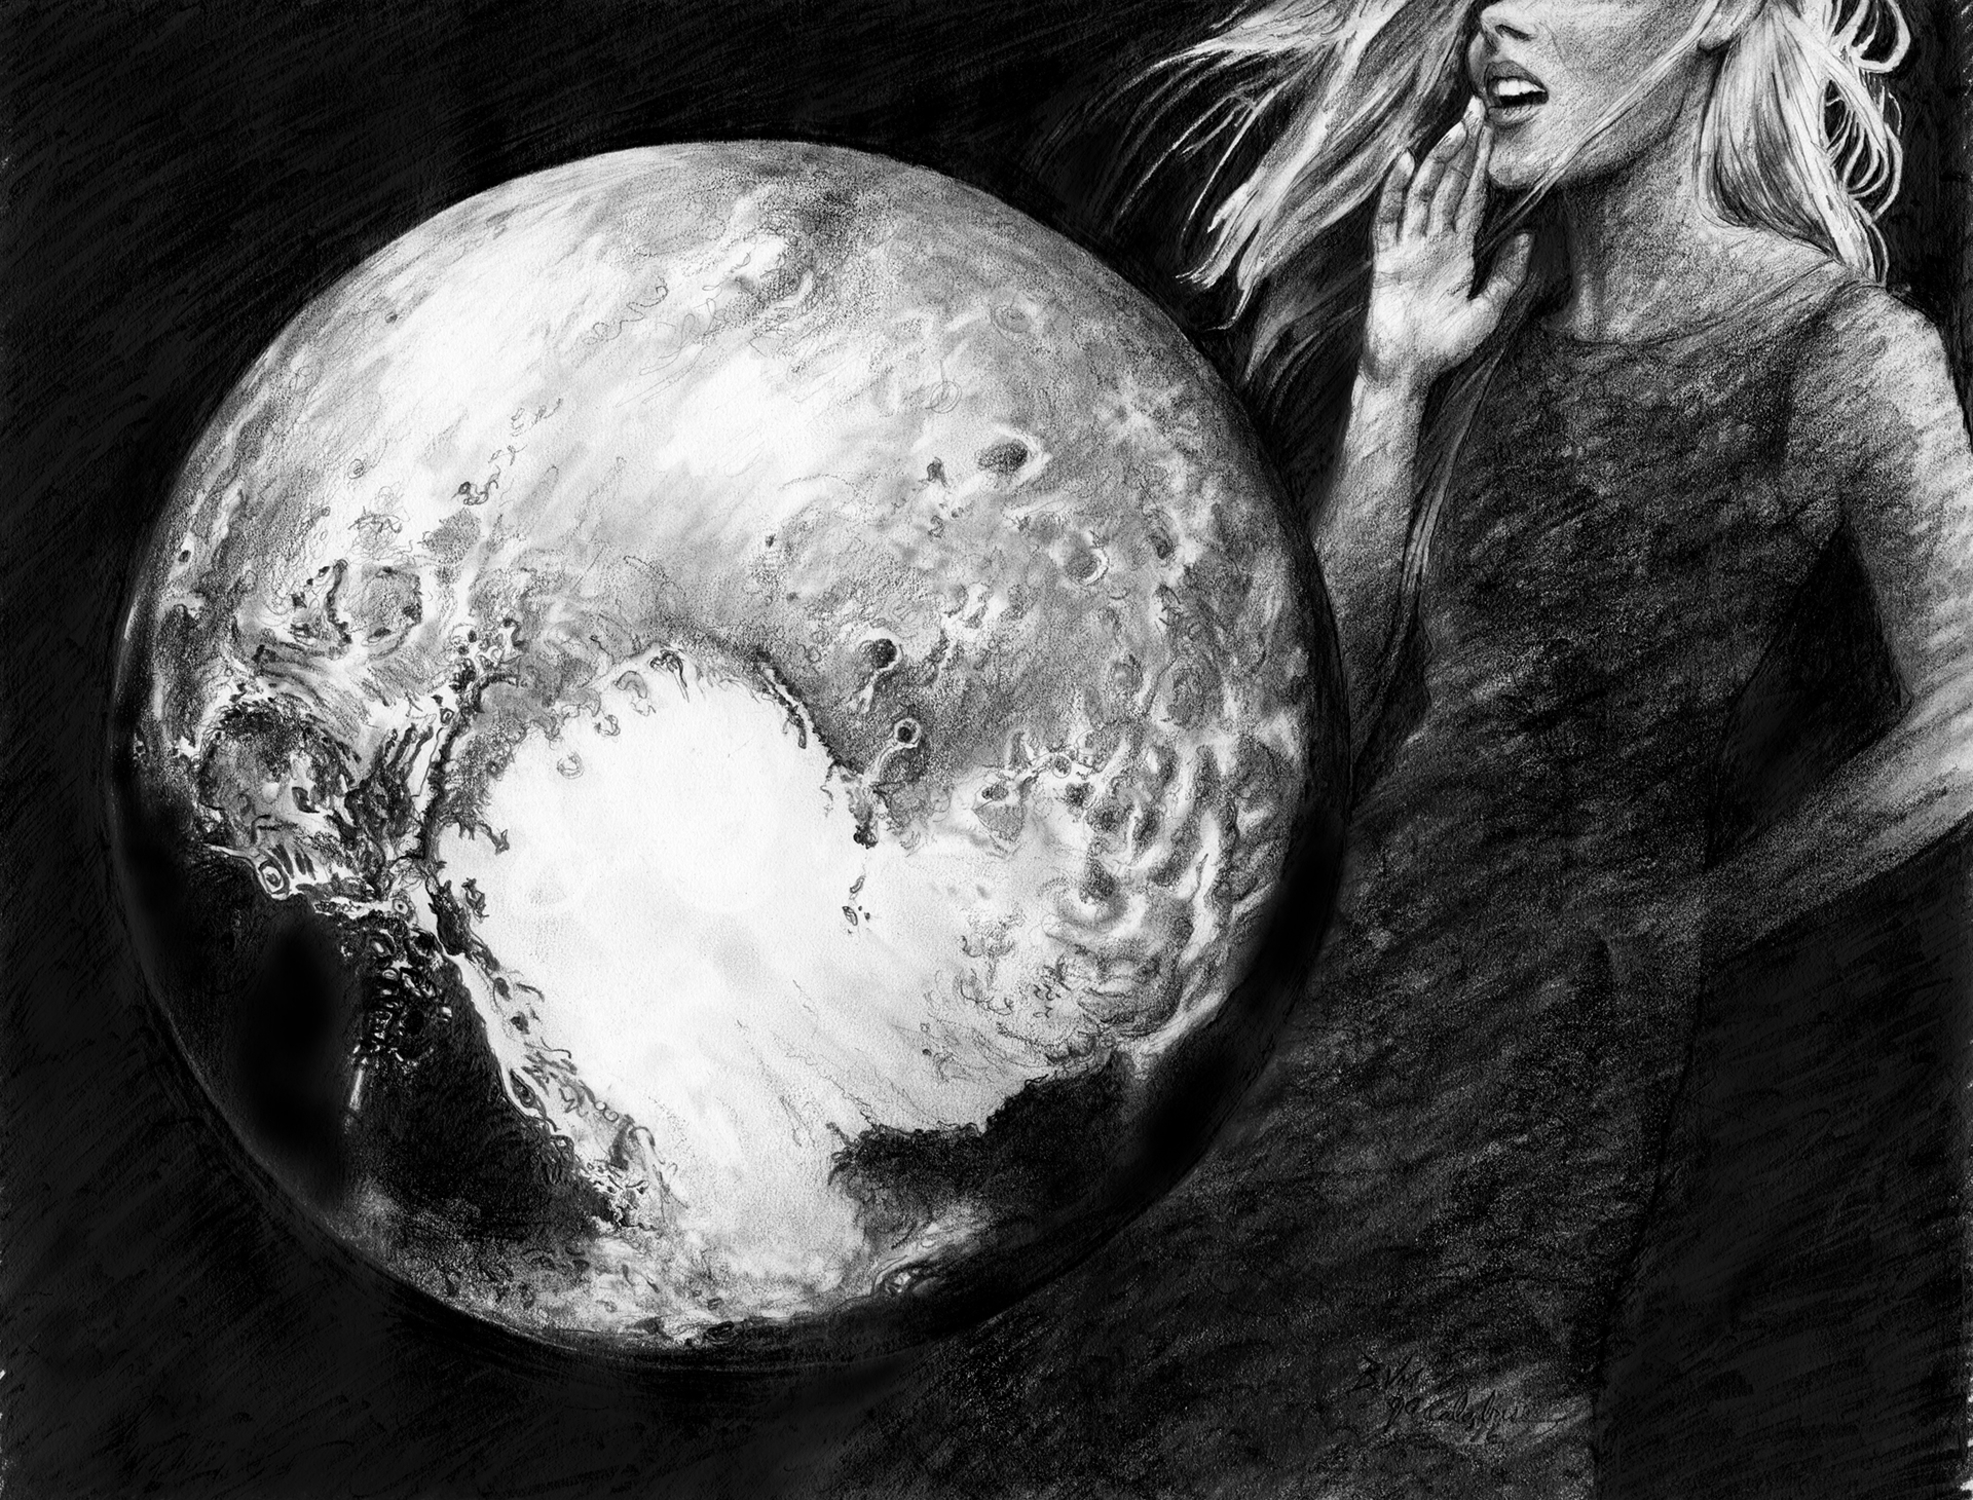 Outer Limit - Pluto Artwork by John Calabrese